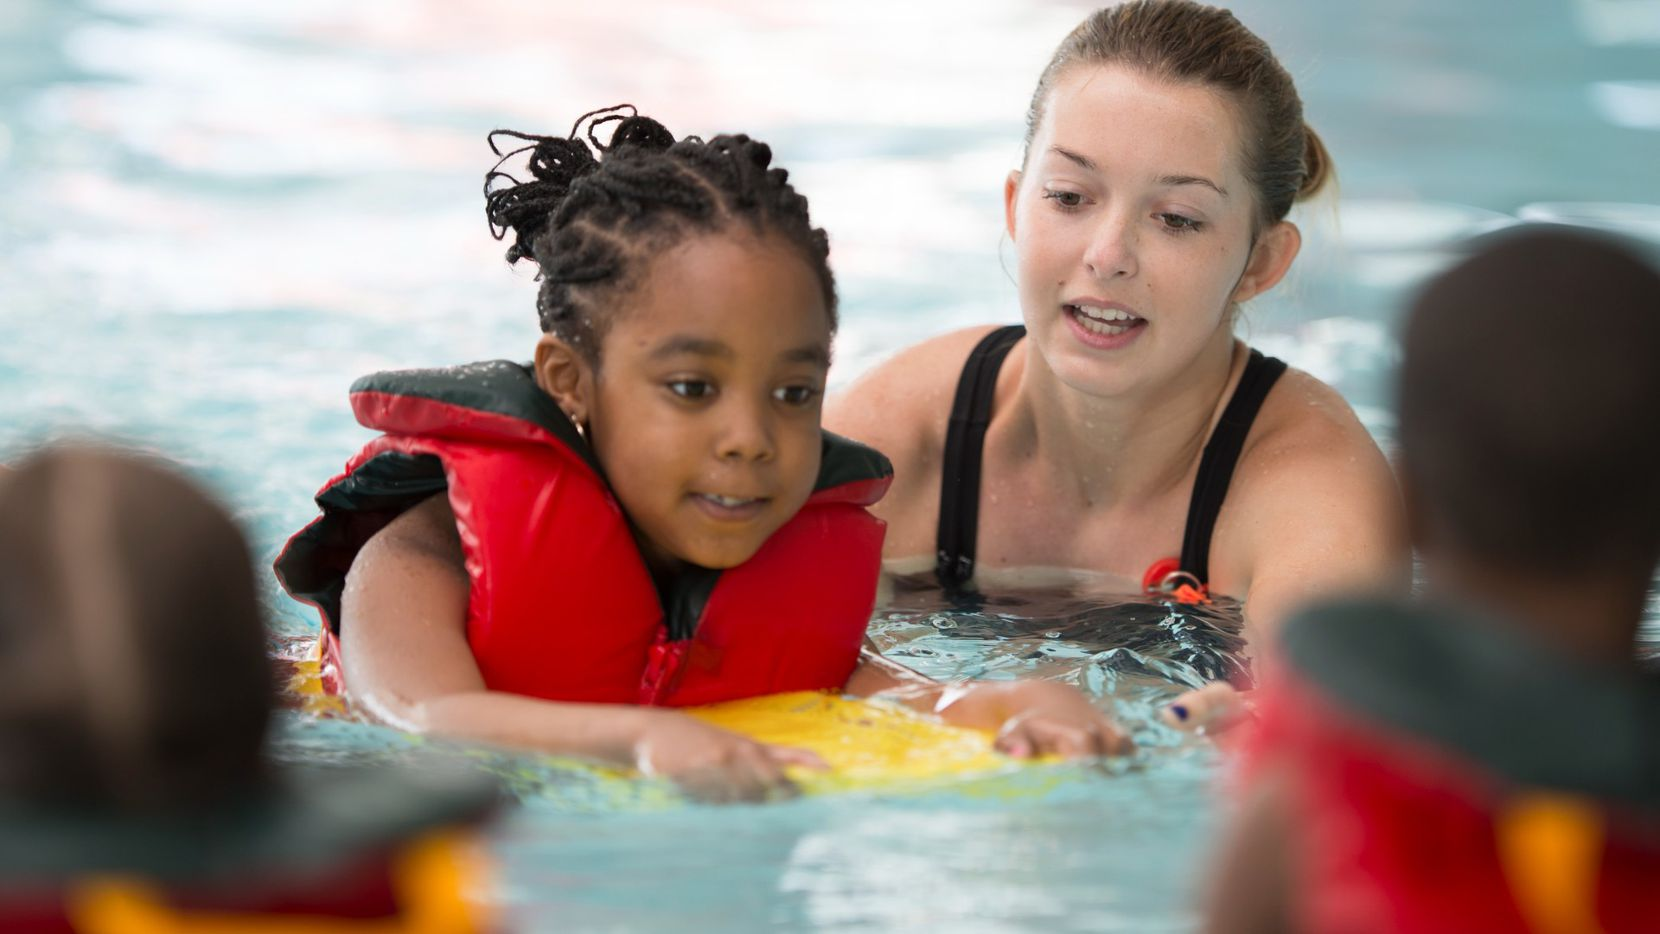 Local YMCAs promote water safety year-round and teach thousands of children to swim each spring and summer. Classes are offered free of charge in underserved communities.